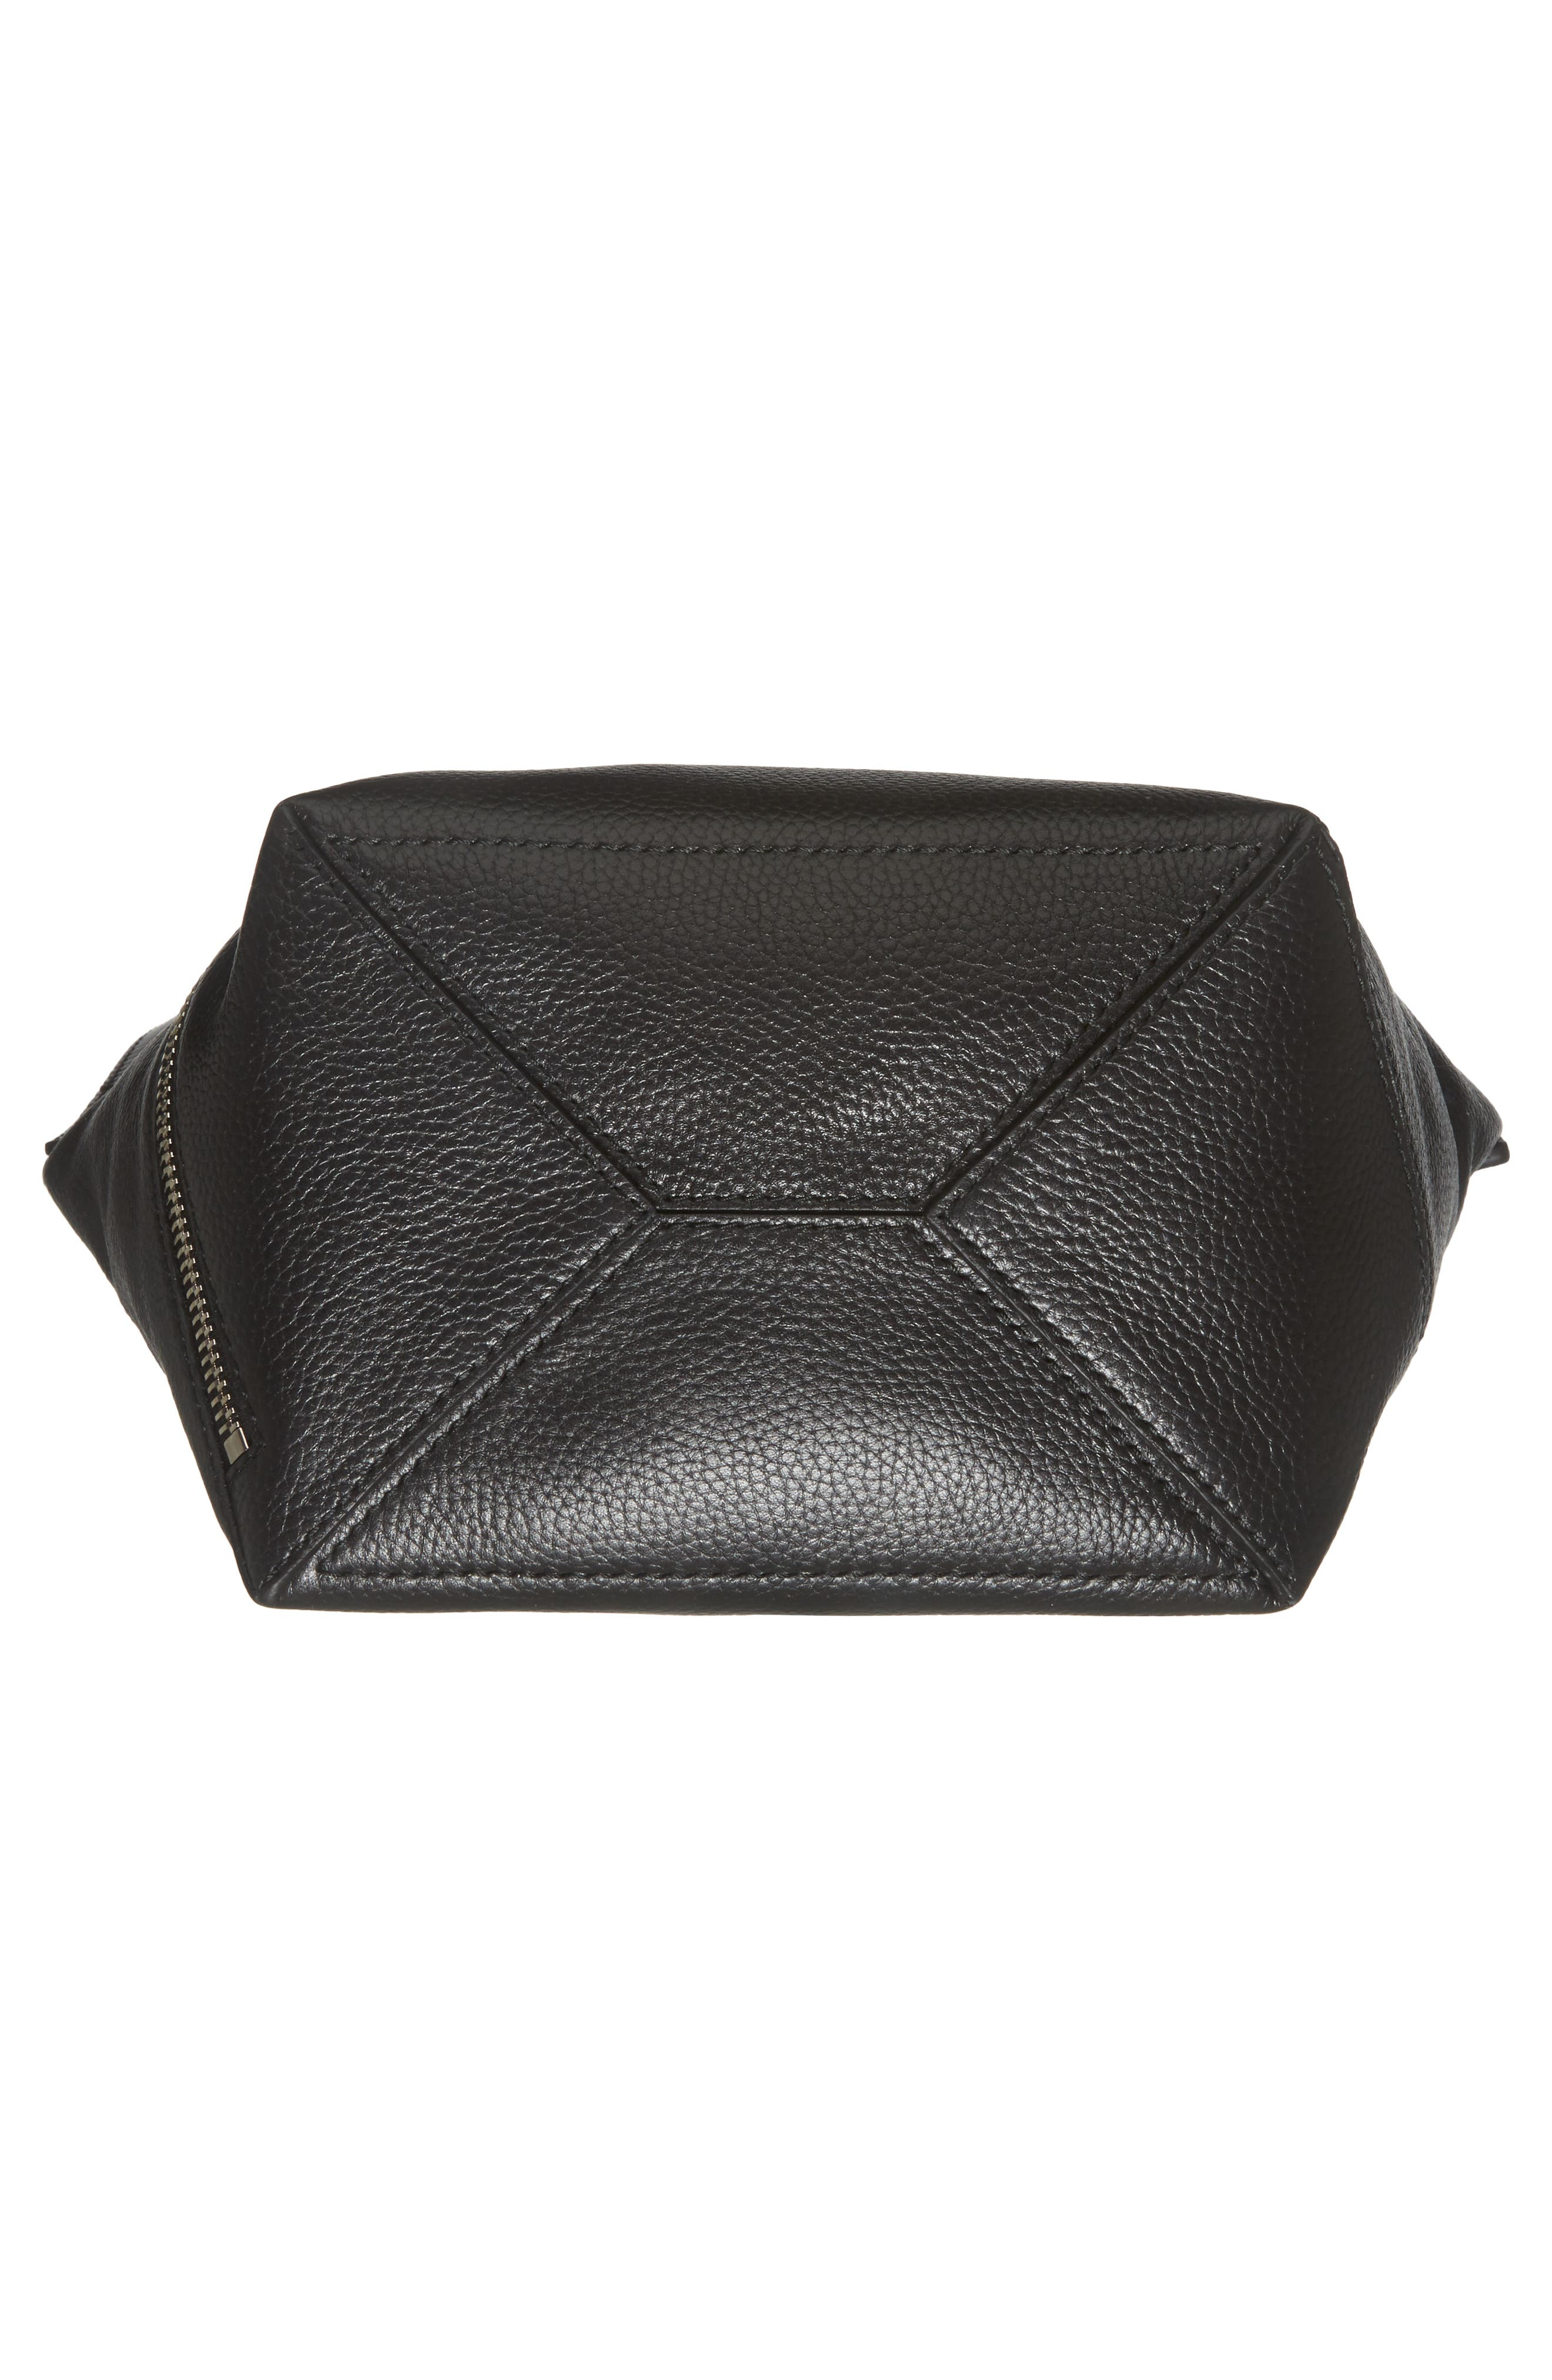 Small Leather Hobo Bag,                             Alternate thumbnail 6, color,                             001